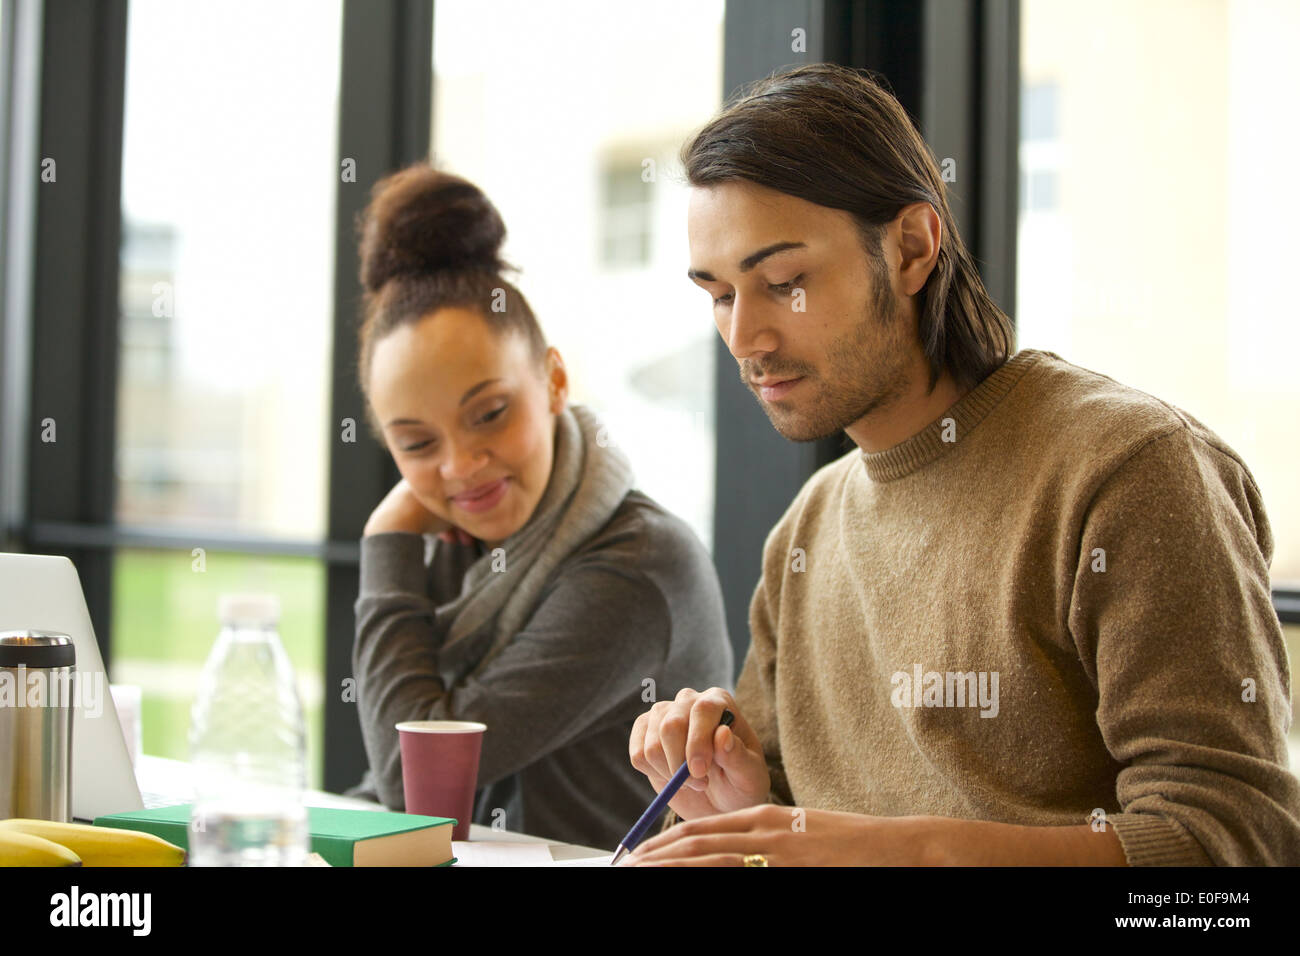 Young man studying hard with woman sitting by. University students preparing for final exams. - Stock Image